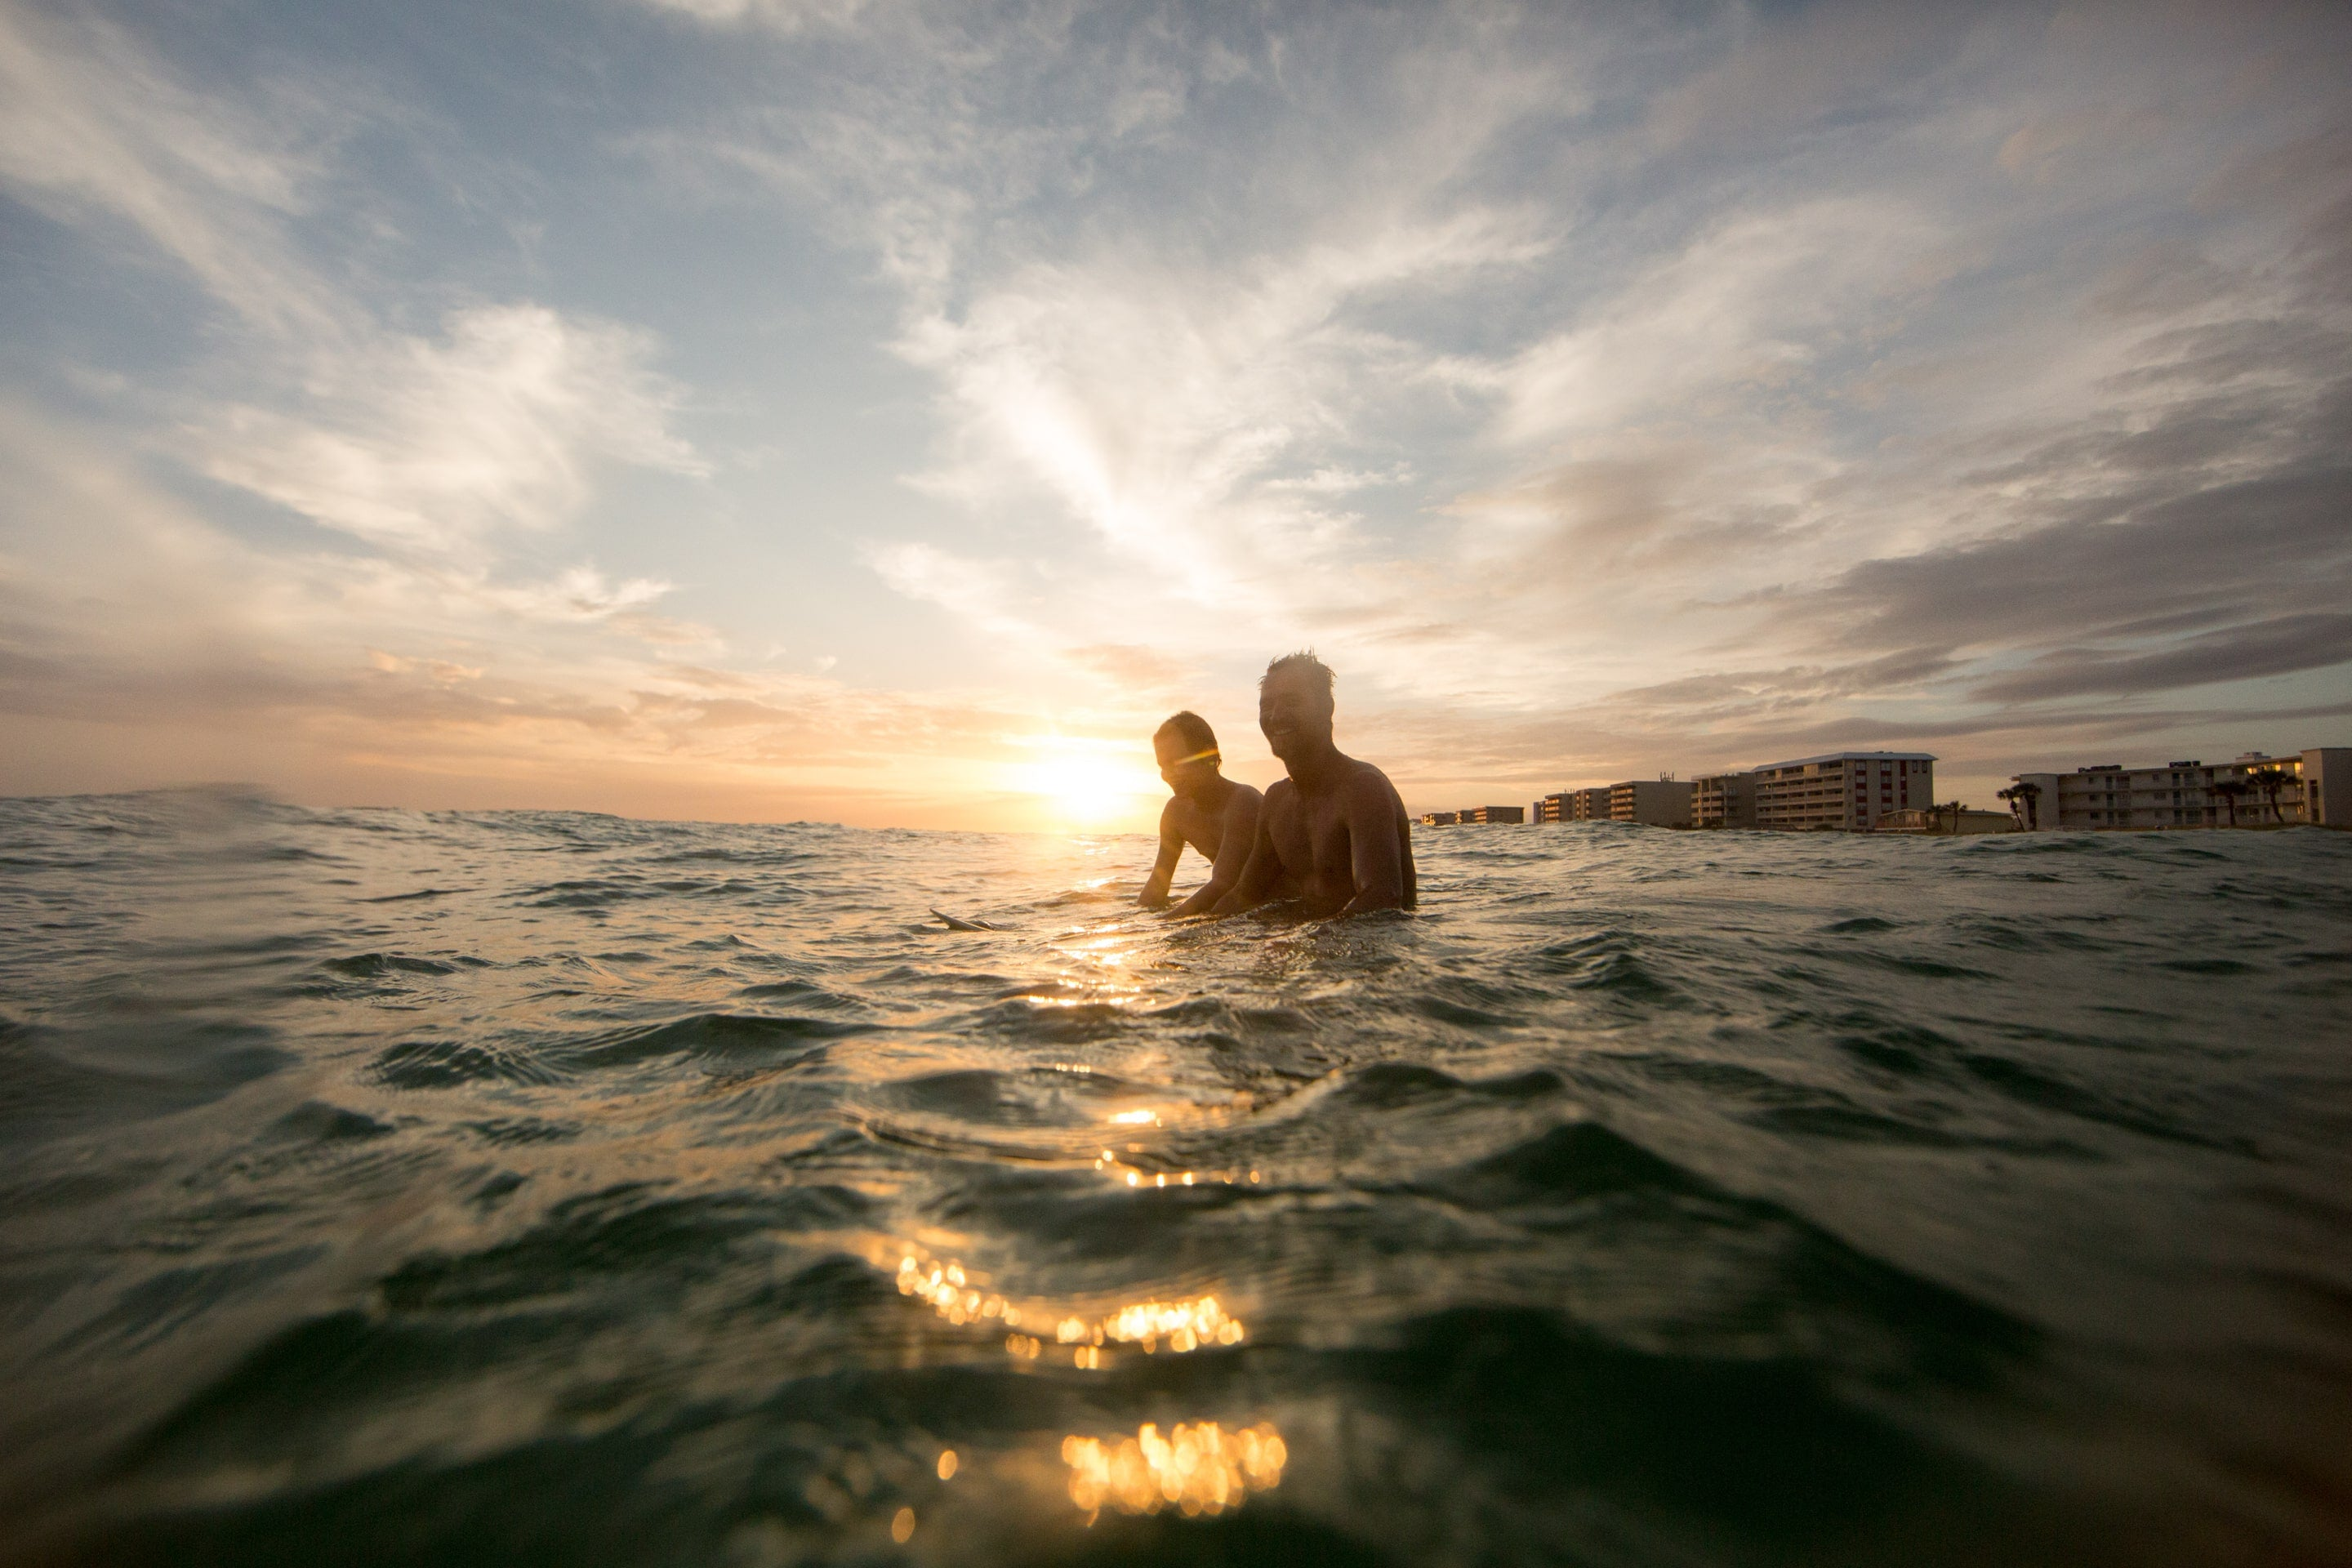 Two Guys on Surfboards at Sunset